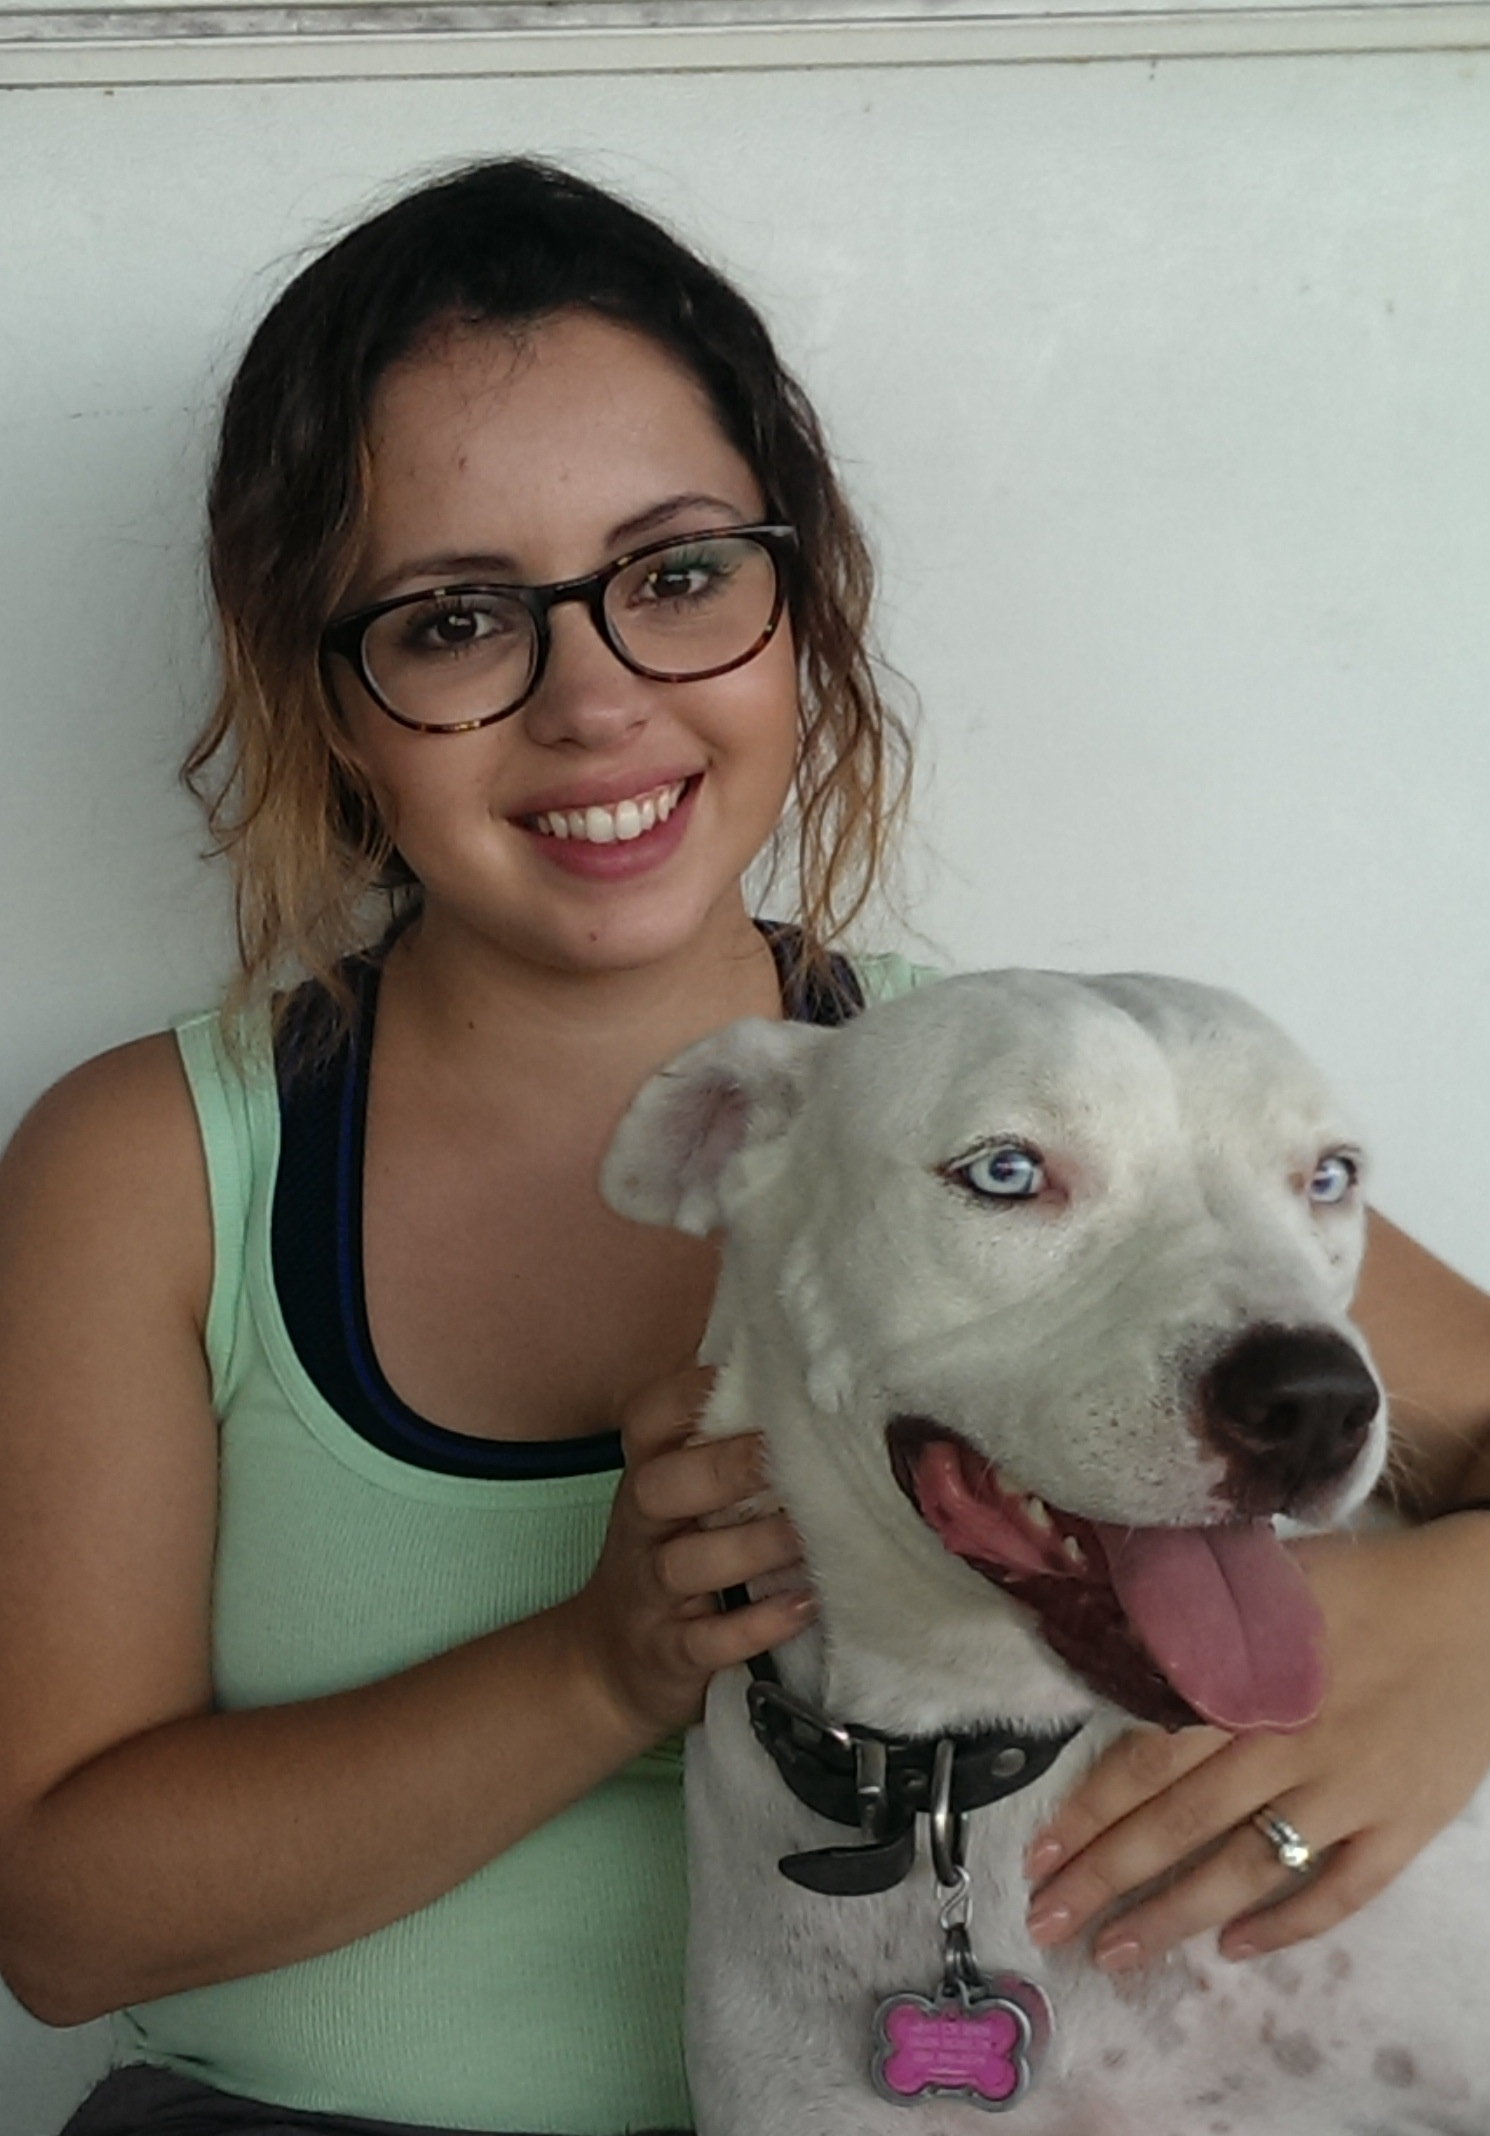 Sexual assault survivor Adriana holds her rescue dog Milli.